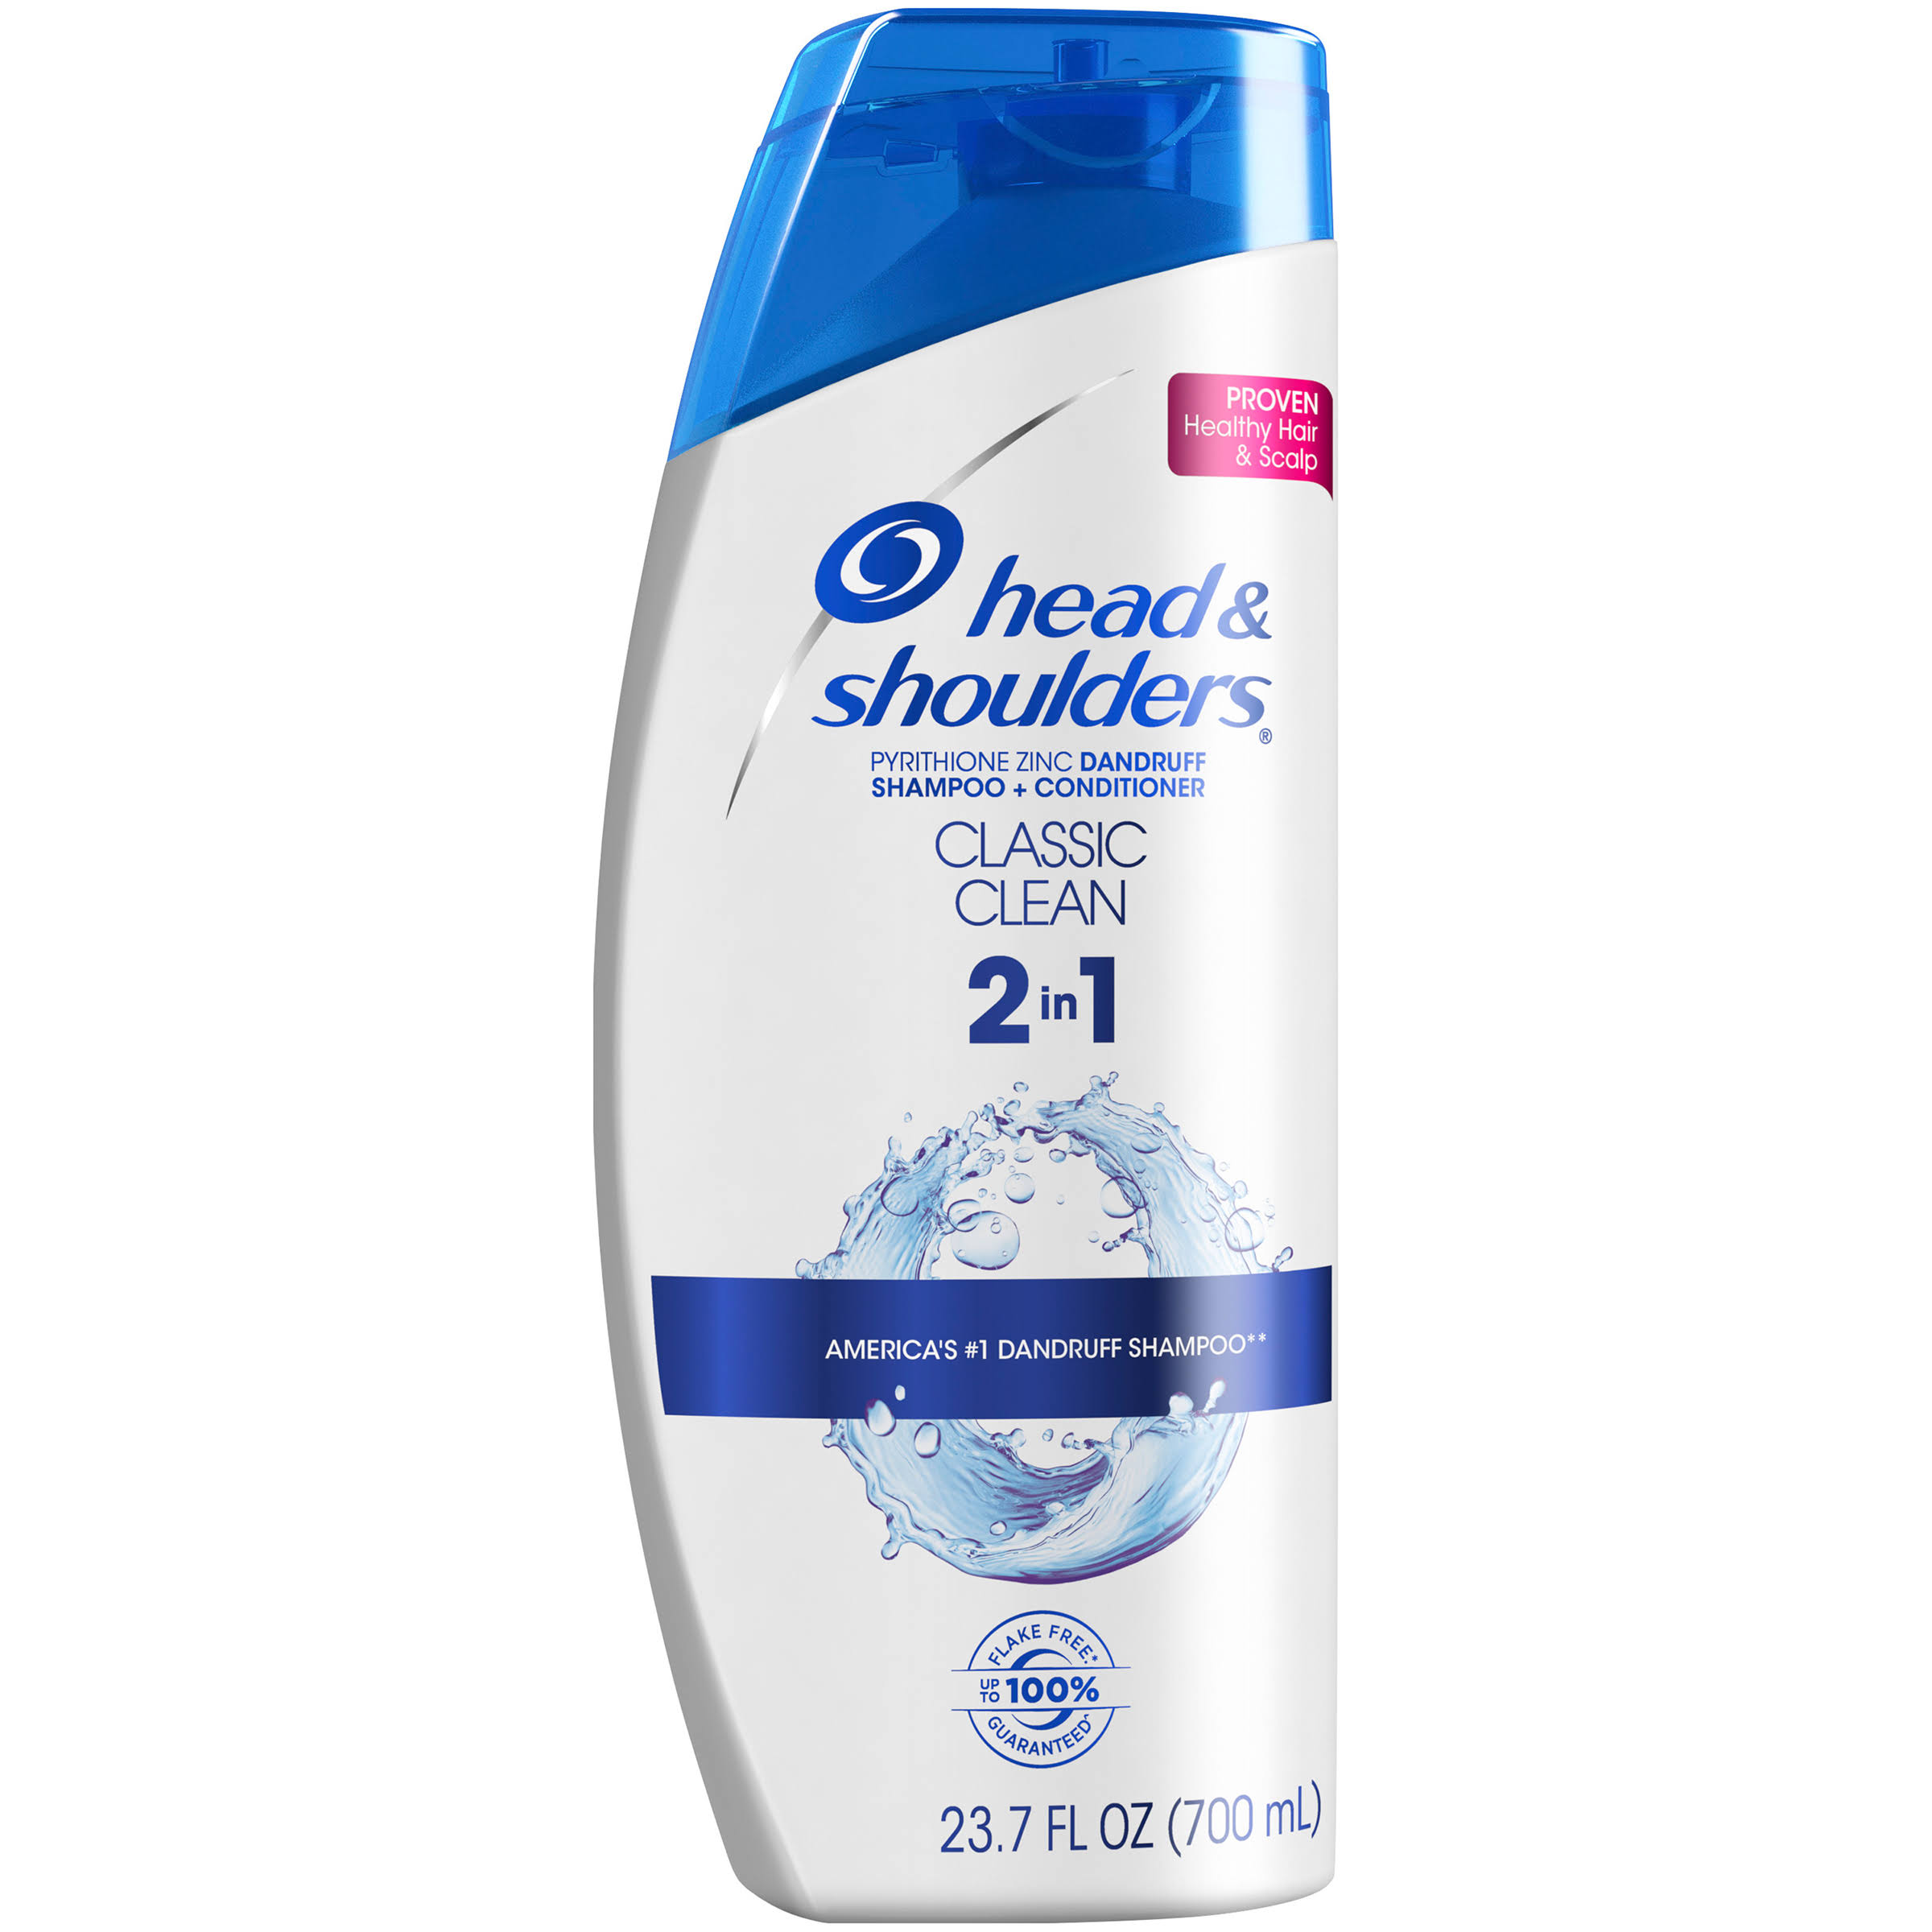 Head And Shoulders Classic Clean 2 In 1 Dandruff Shampoo Plus Conditioner - 23.7oz